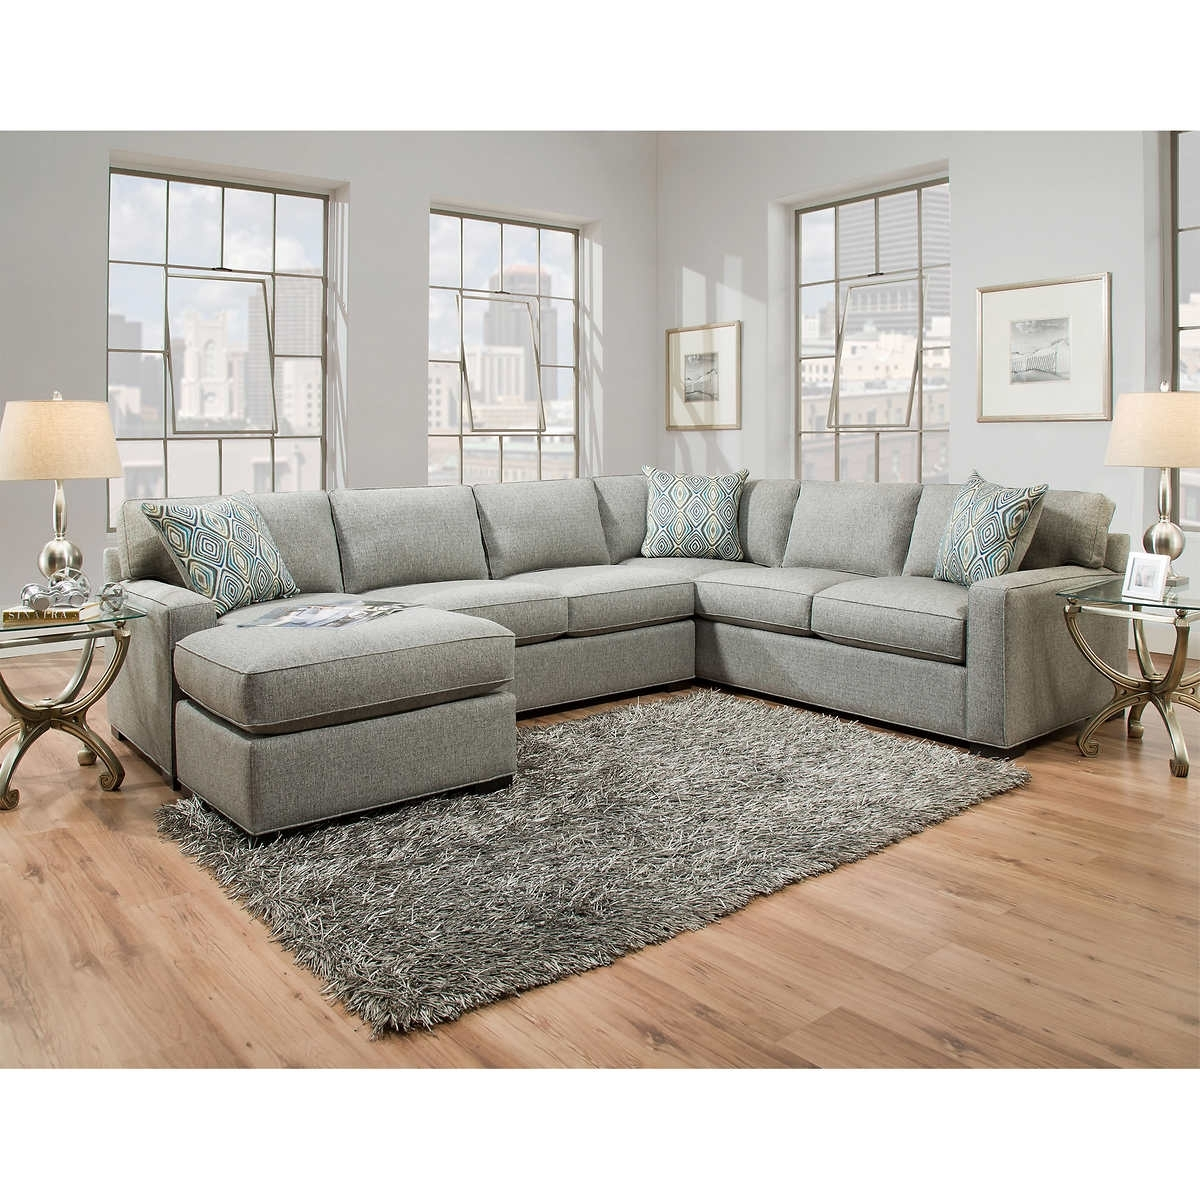 Fancy Costco Sofas Sectionals 91 In Sectional Sofas Raleigh Nc With In Raleigh Nc Sectional Sofas (View 7 of 10)